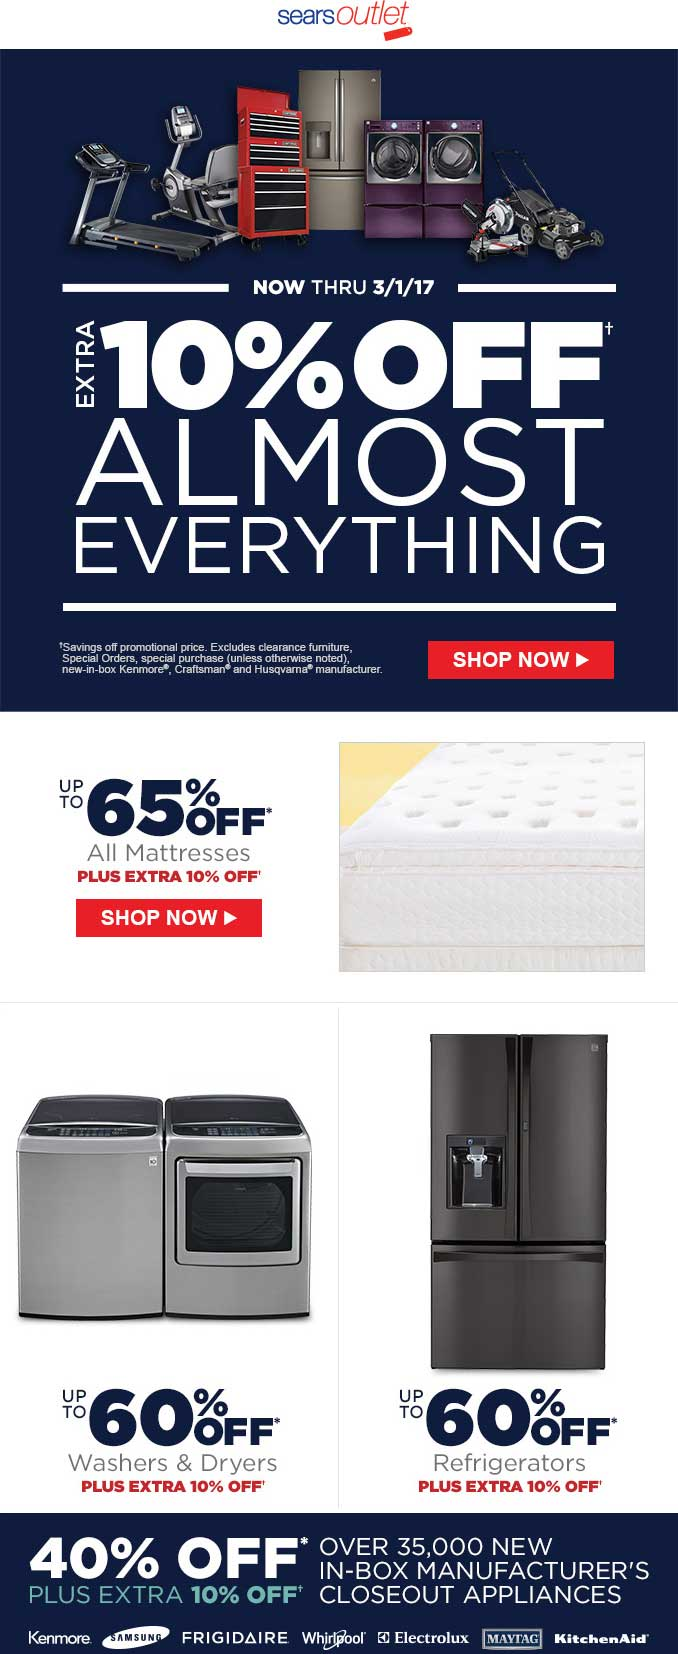 Sears Outlet coupons & promo code for [June 2020]